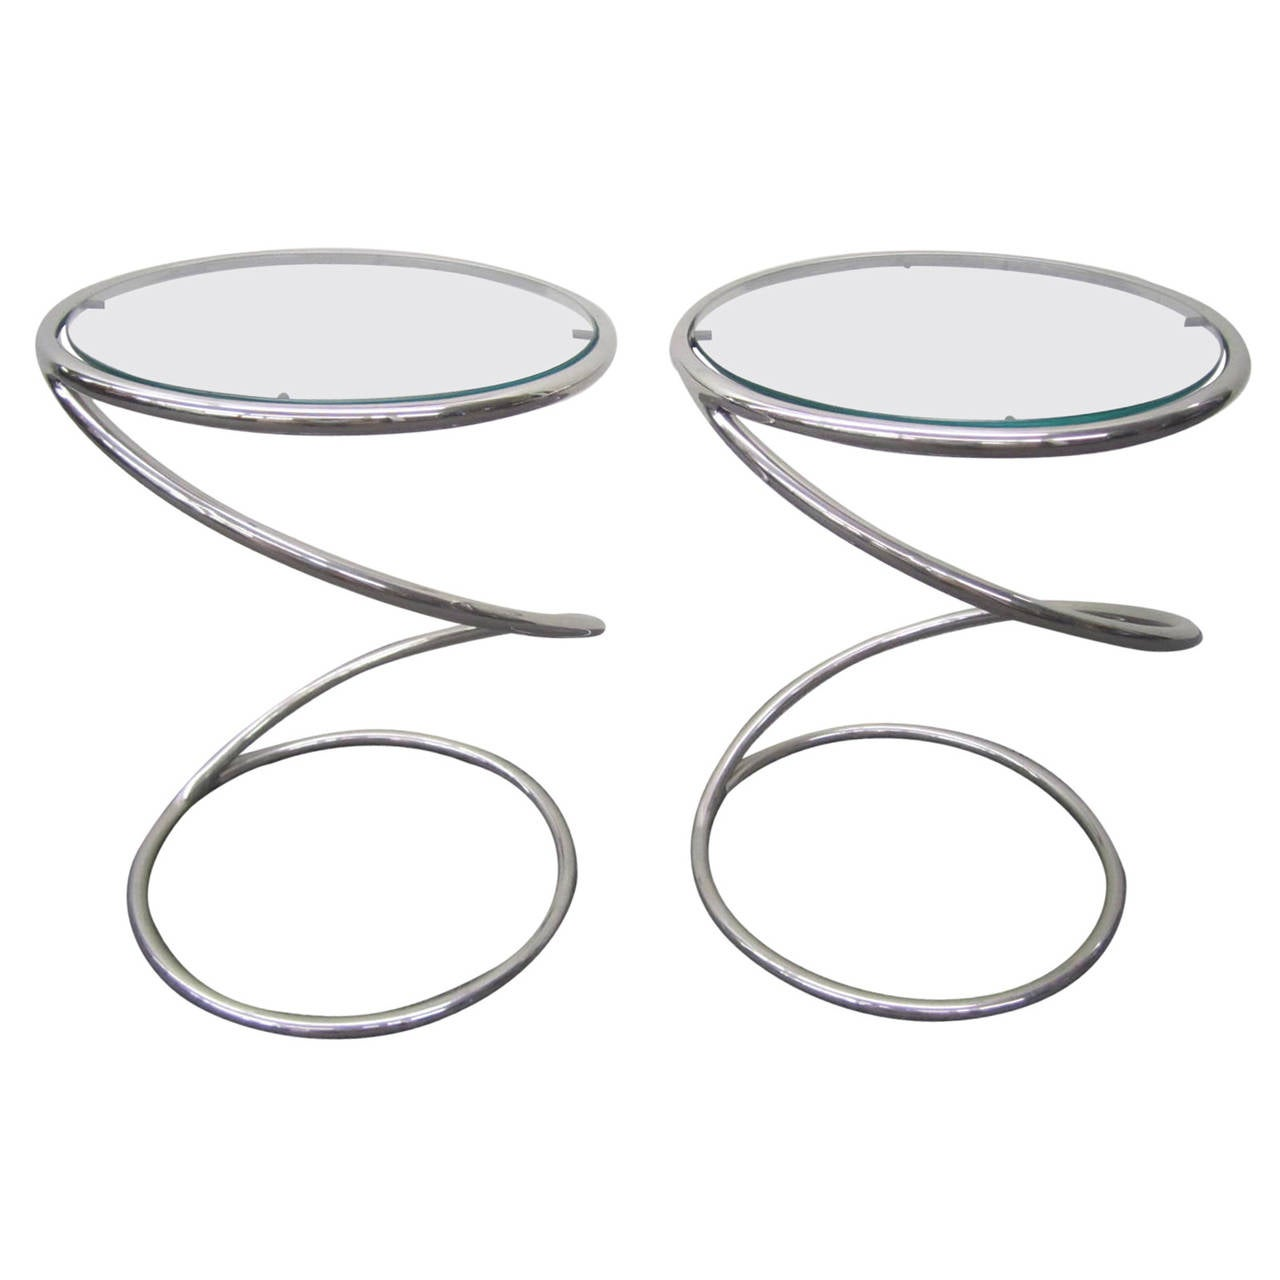 Stunning Pair of Chrome Pace Collection Spring Side Tables, Mid-Century Modern